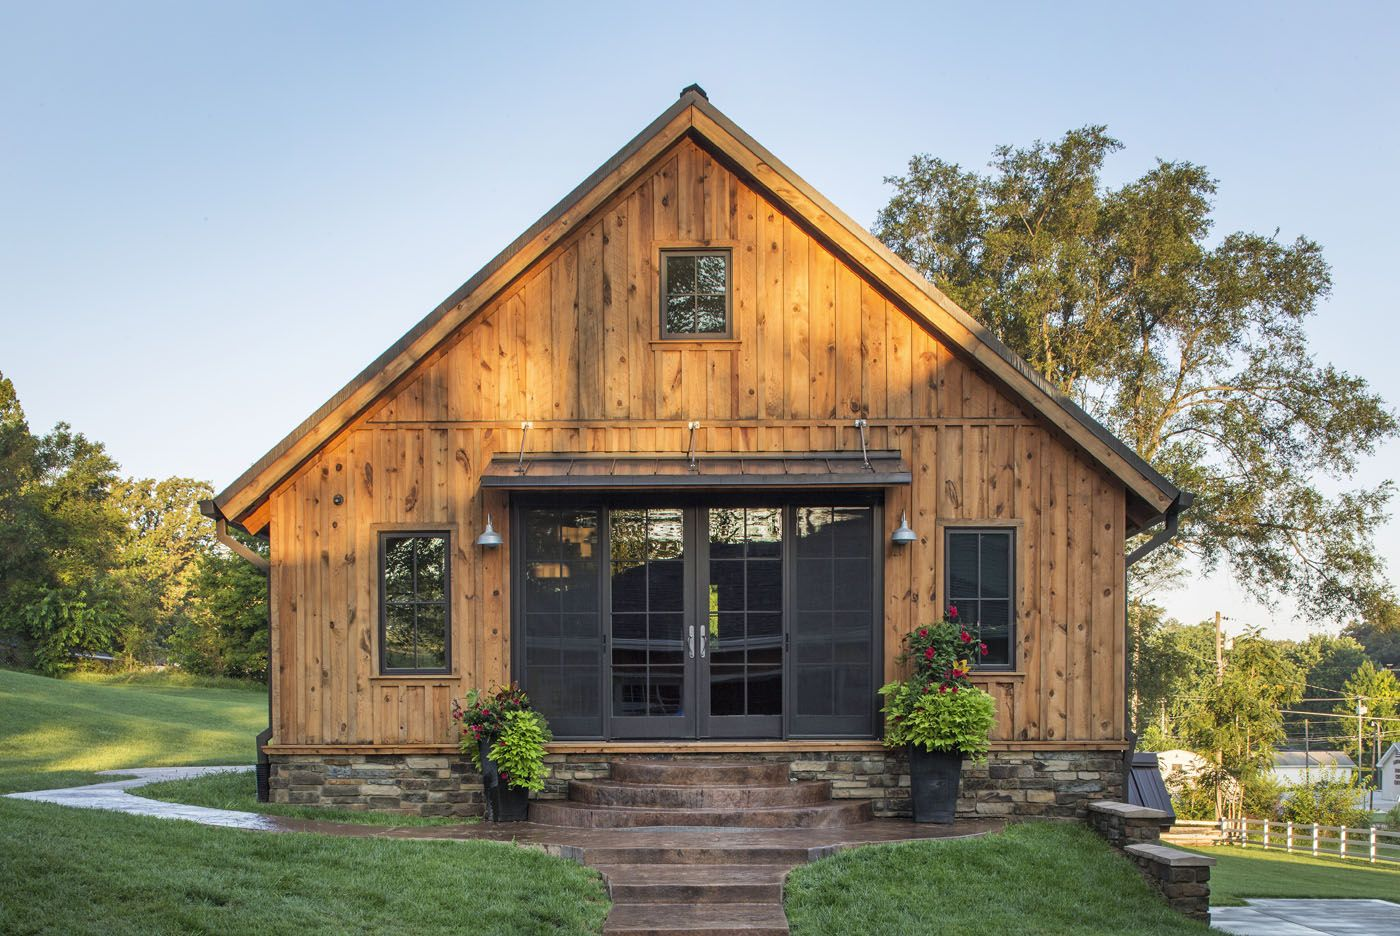 Rustic Barn Home Kits Shipped Nationwide Visit our website to